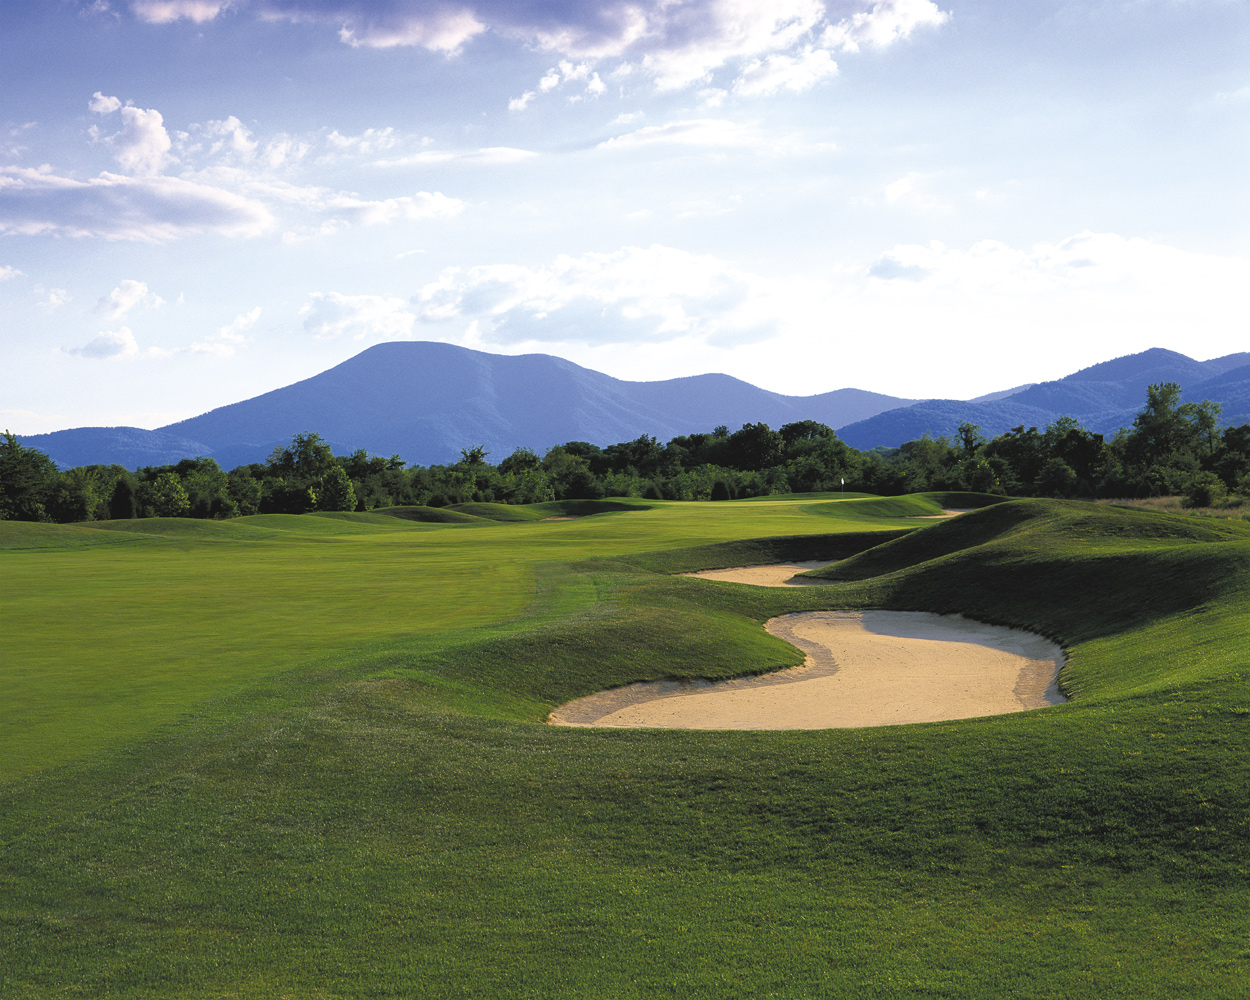 Search Golf Courses | Rees Jones, Inc. Golf Course Design